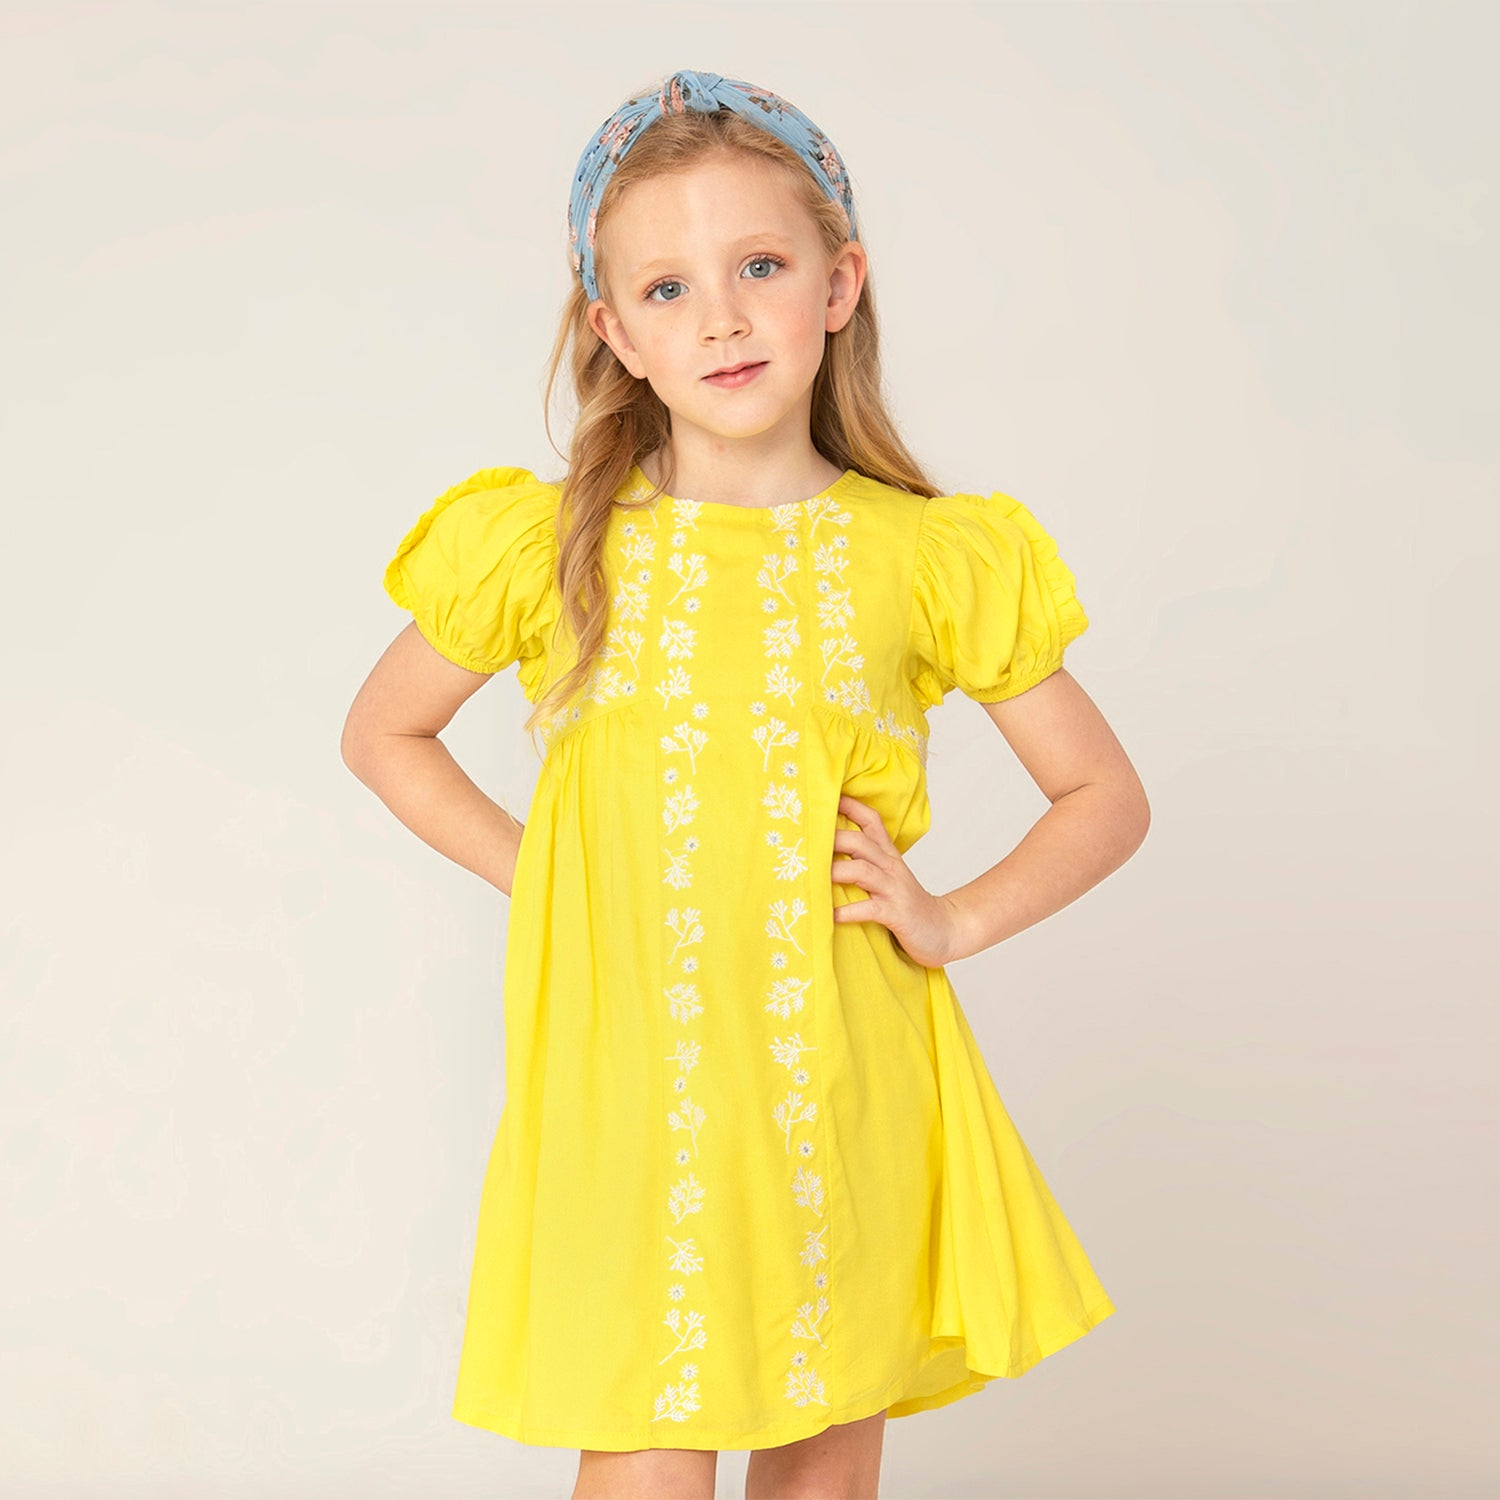 Cherry-Crumble-Kids-Sleevless-Sleevless-Round-Neck-Solid-Fit-&-Flare-Dress